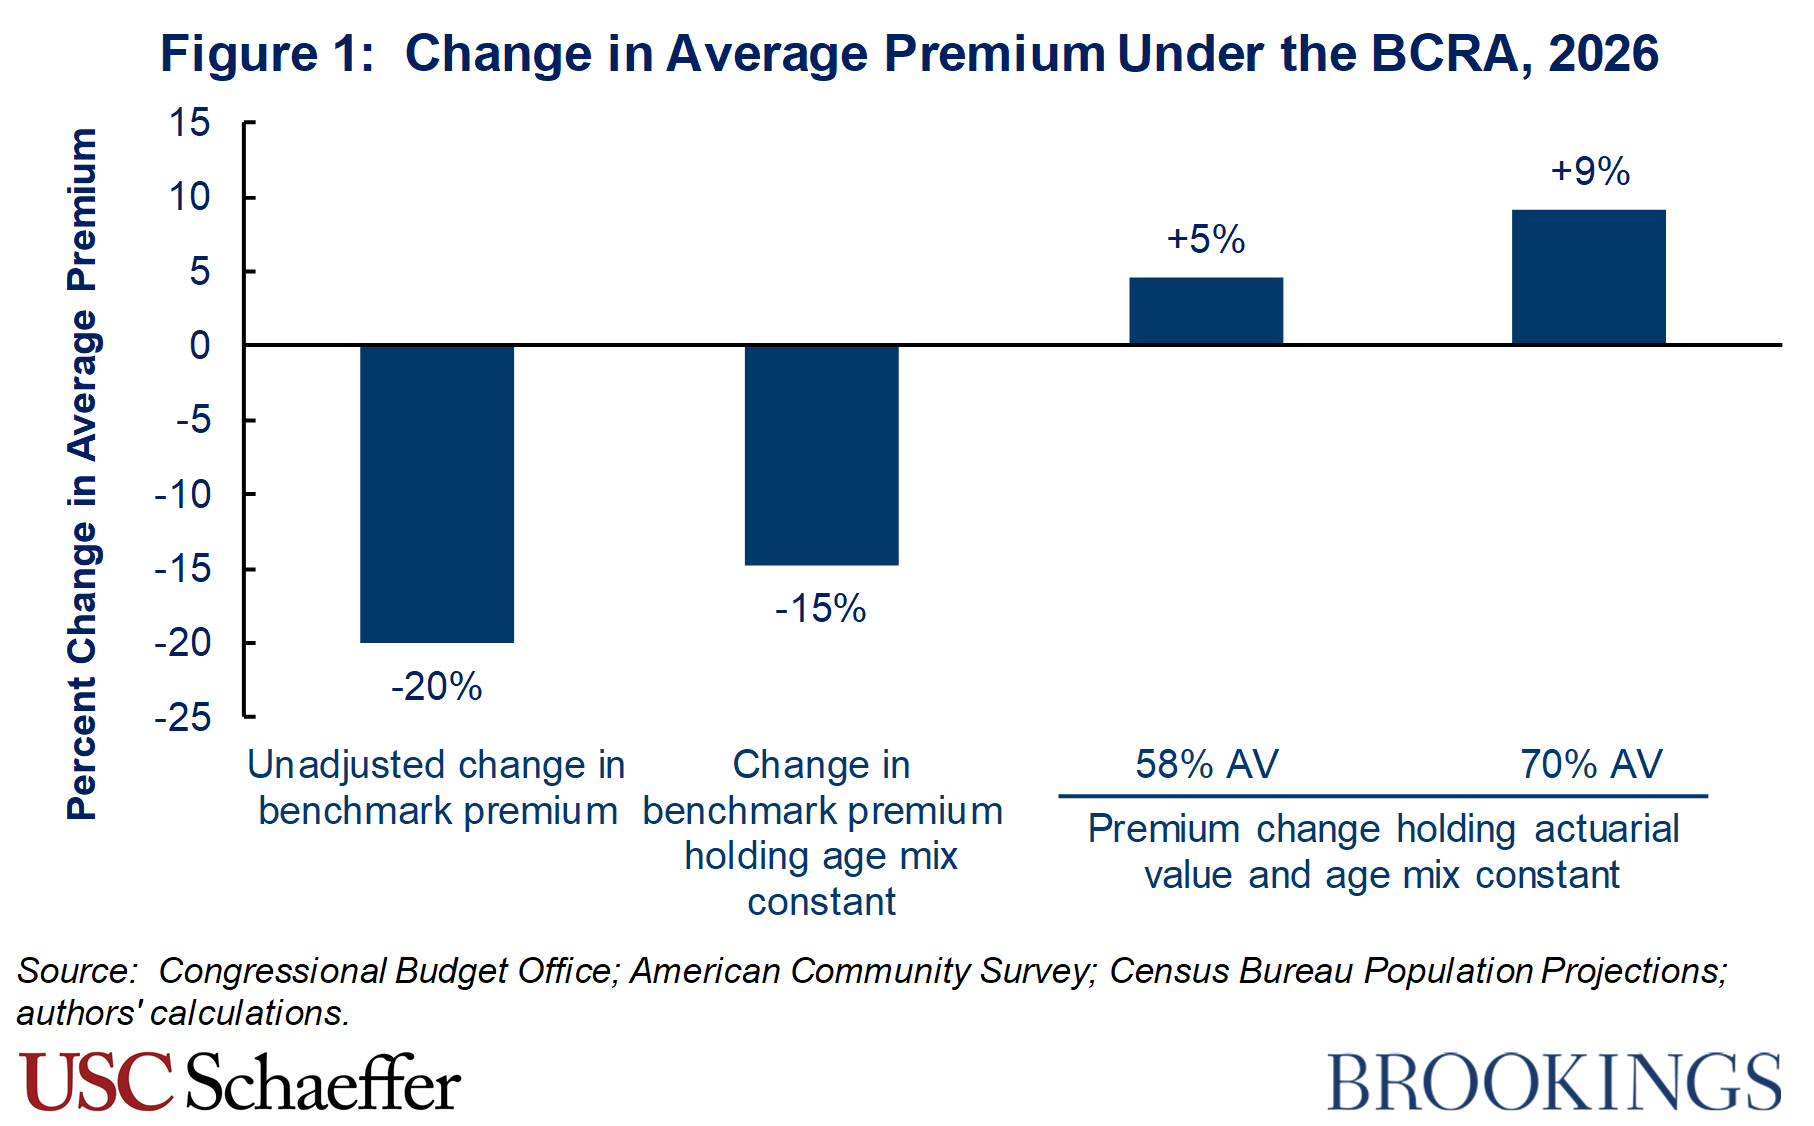 How would the Senate's health care bill affect individual market premiums?